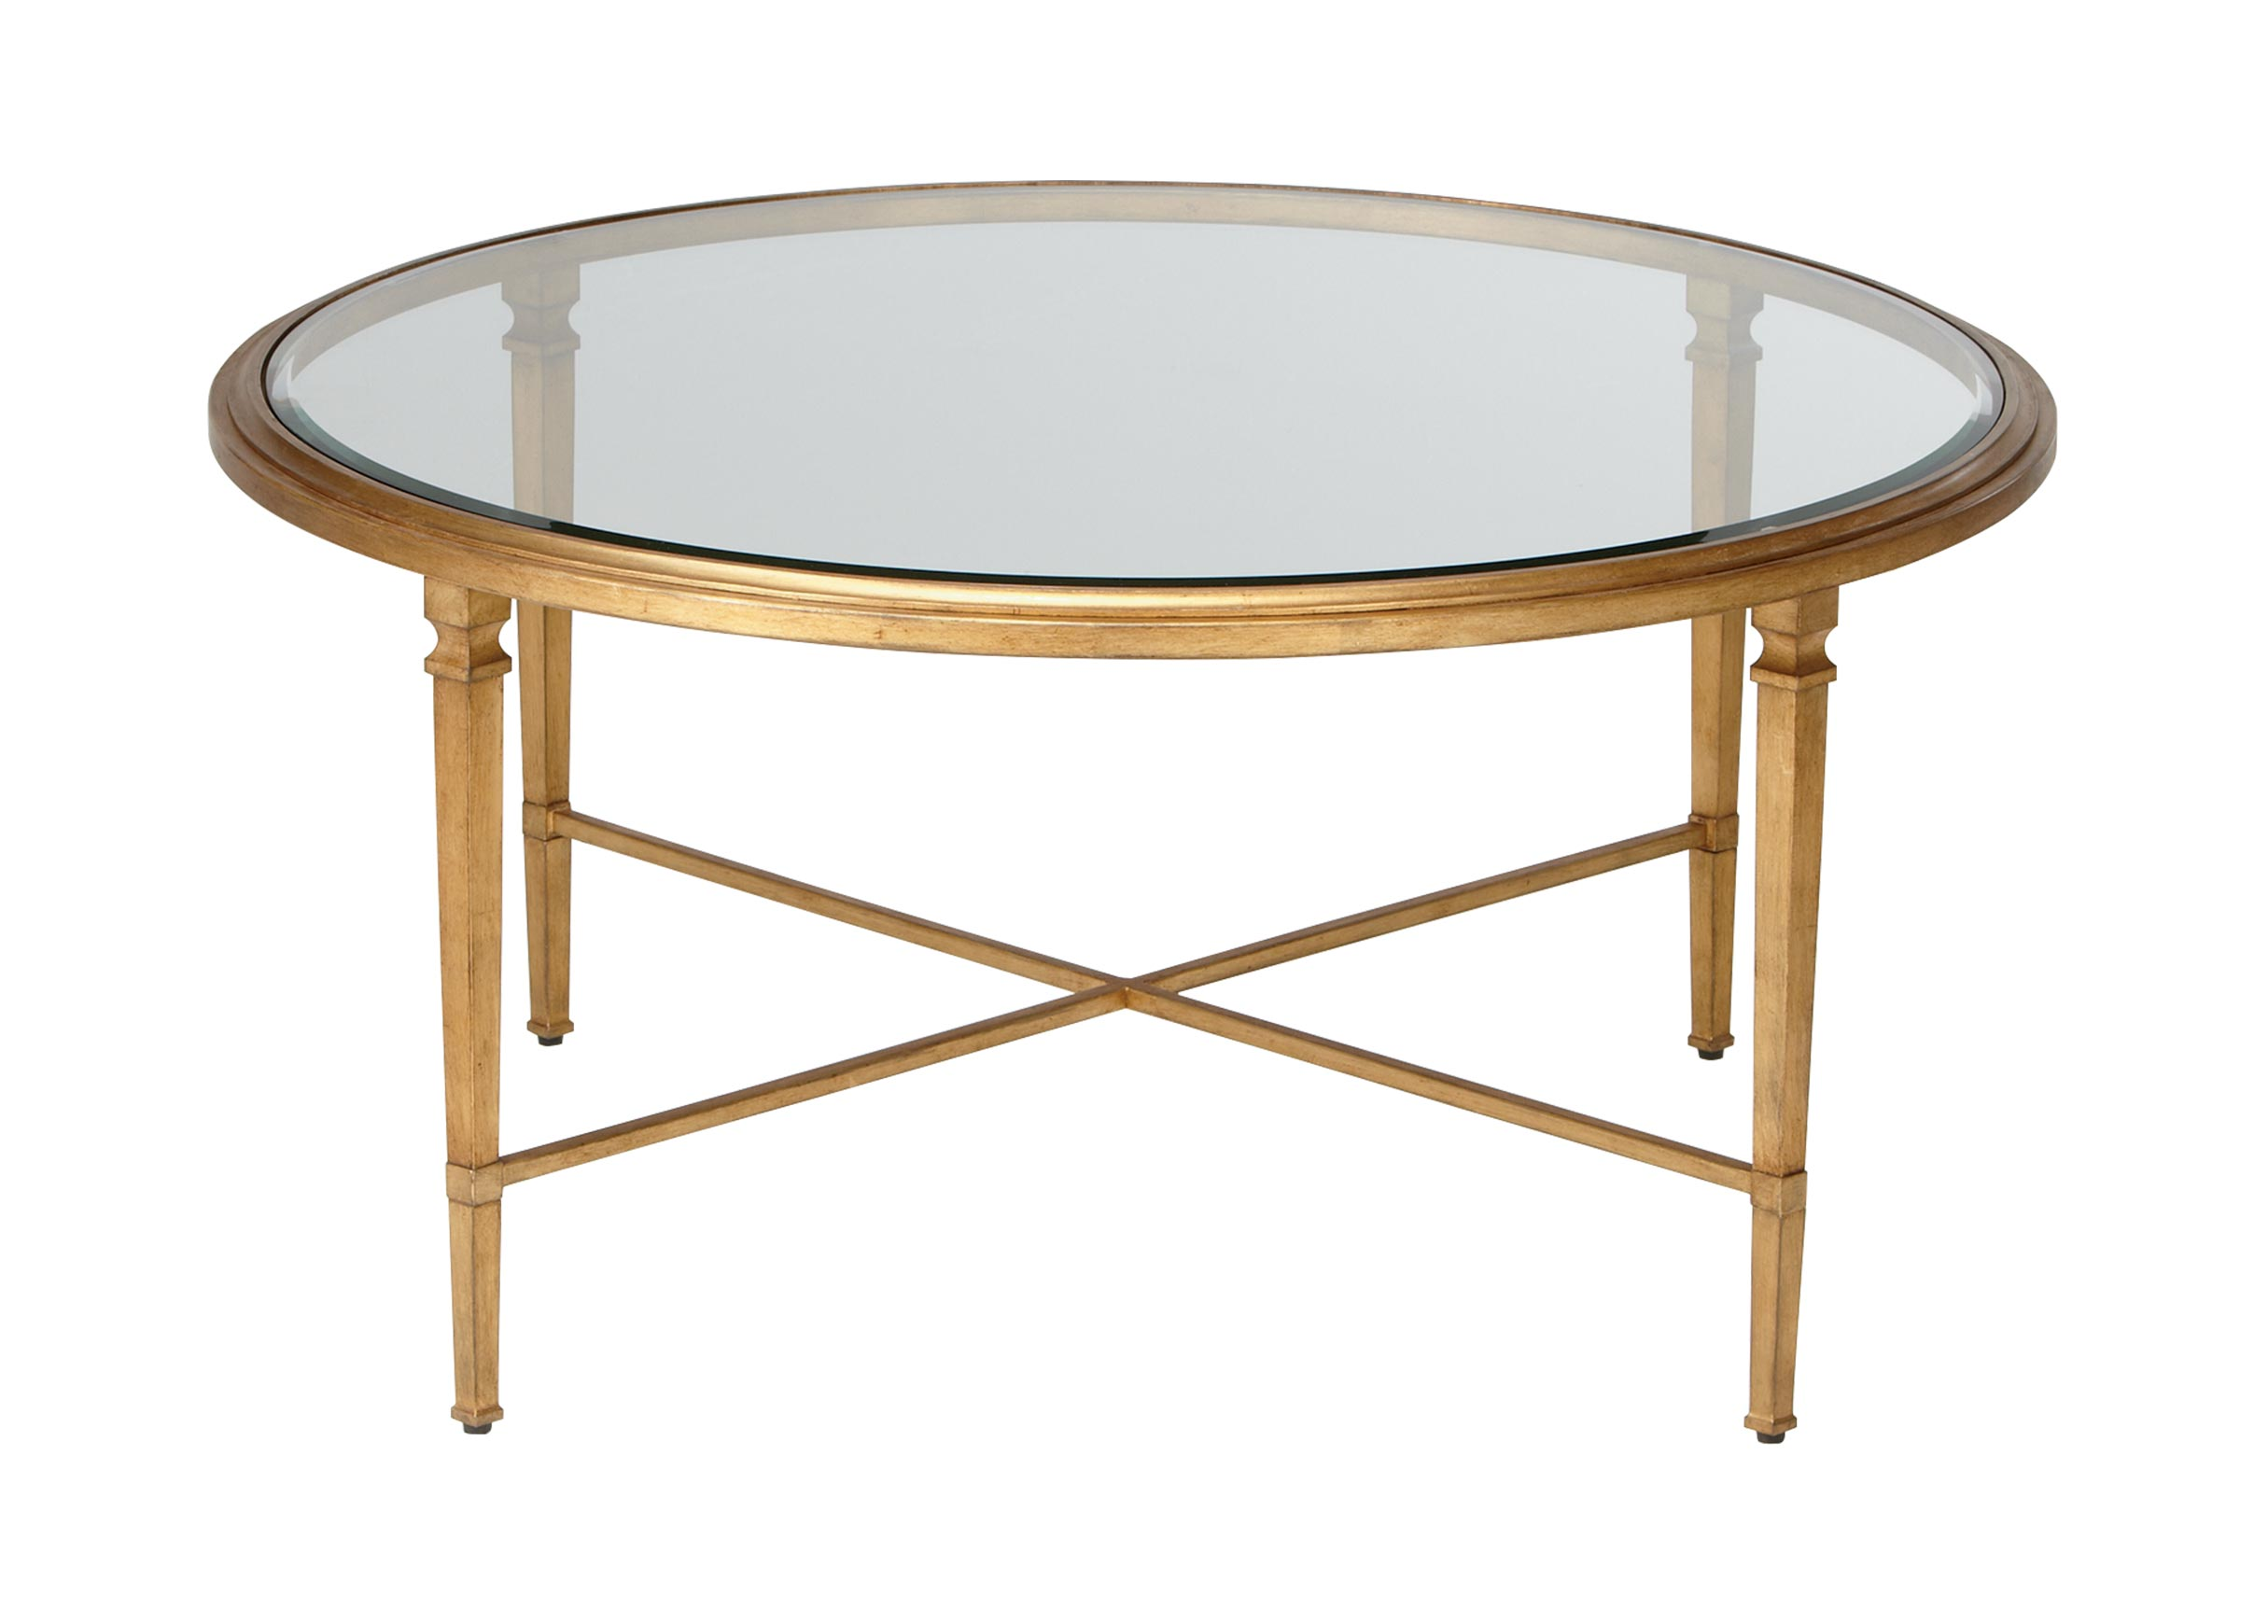 heron round coffee table tables ethan allen front and end large dog crate inch side ott trays home decor painting furniture that has already been painted wood for outdoor use